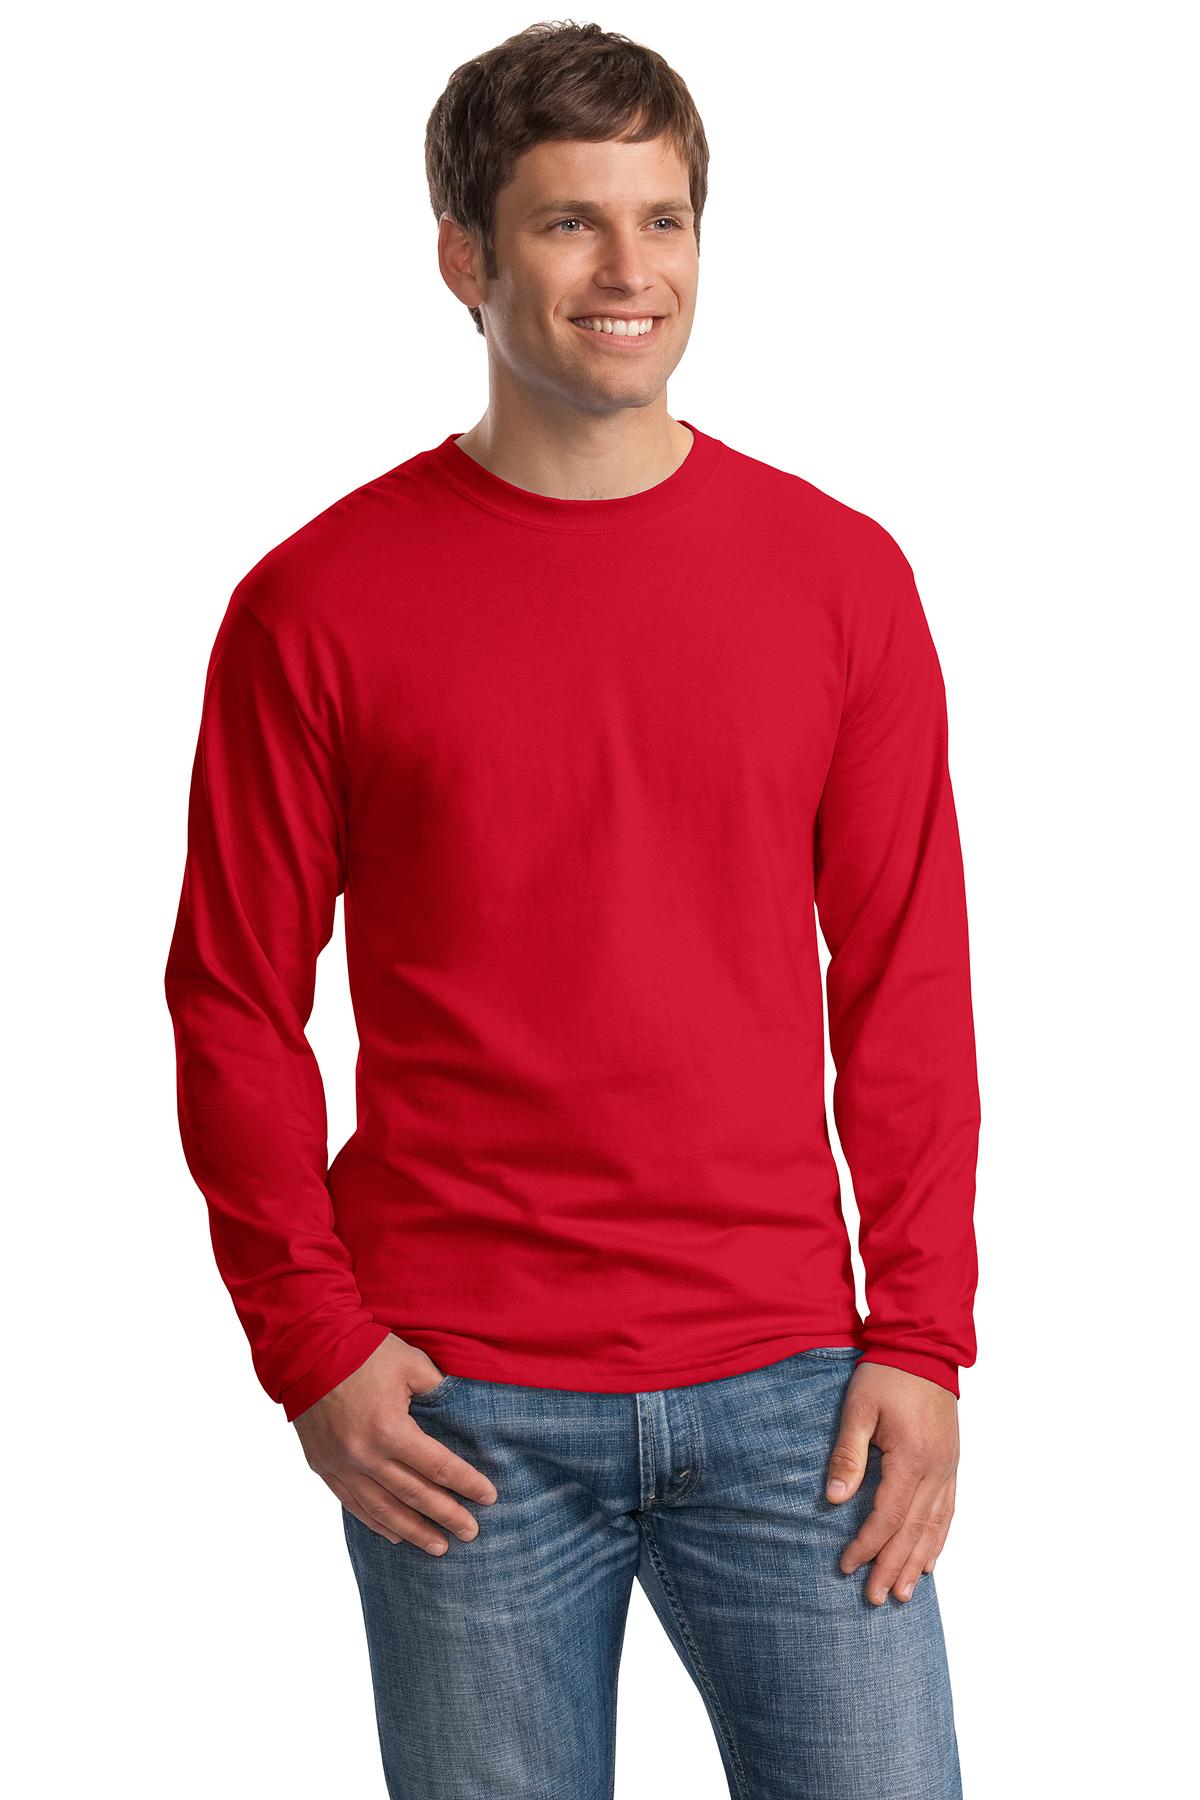 Long Sleeve Red T Shirt Mens Custom Shirt